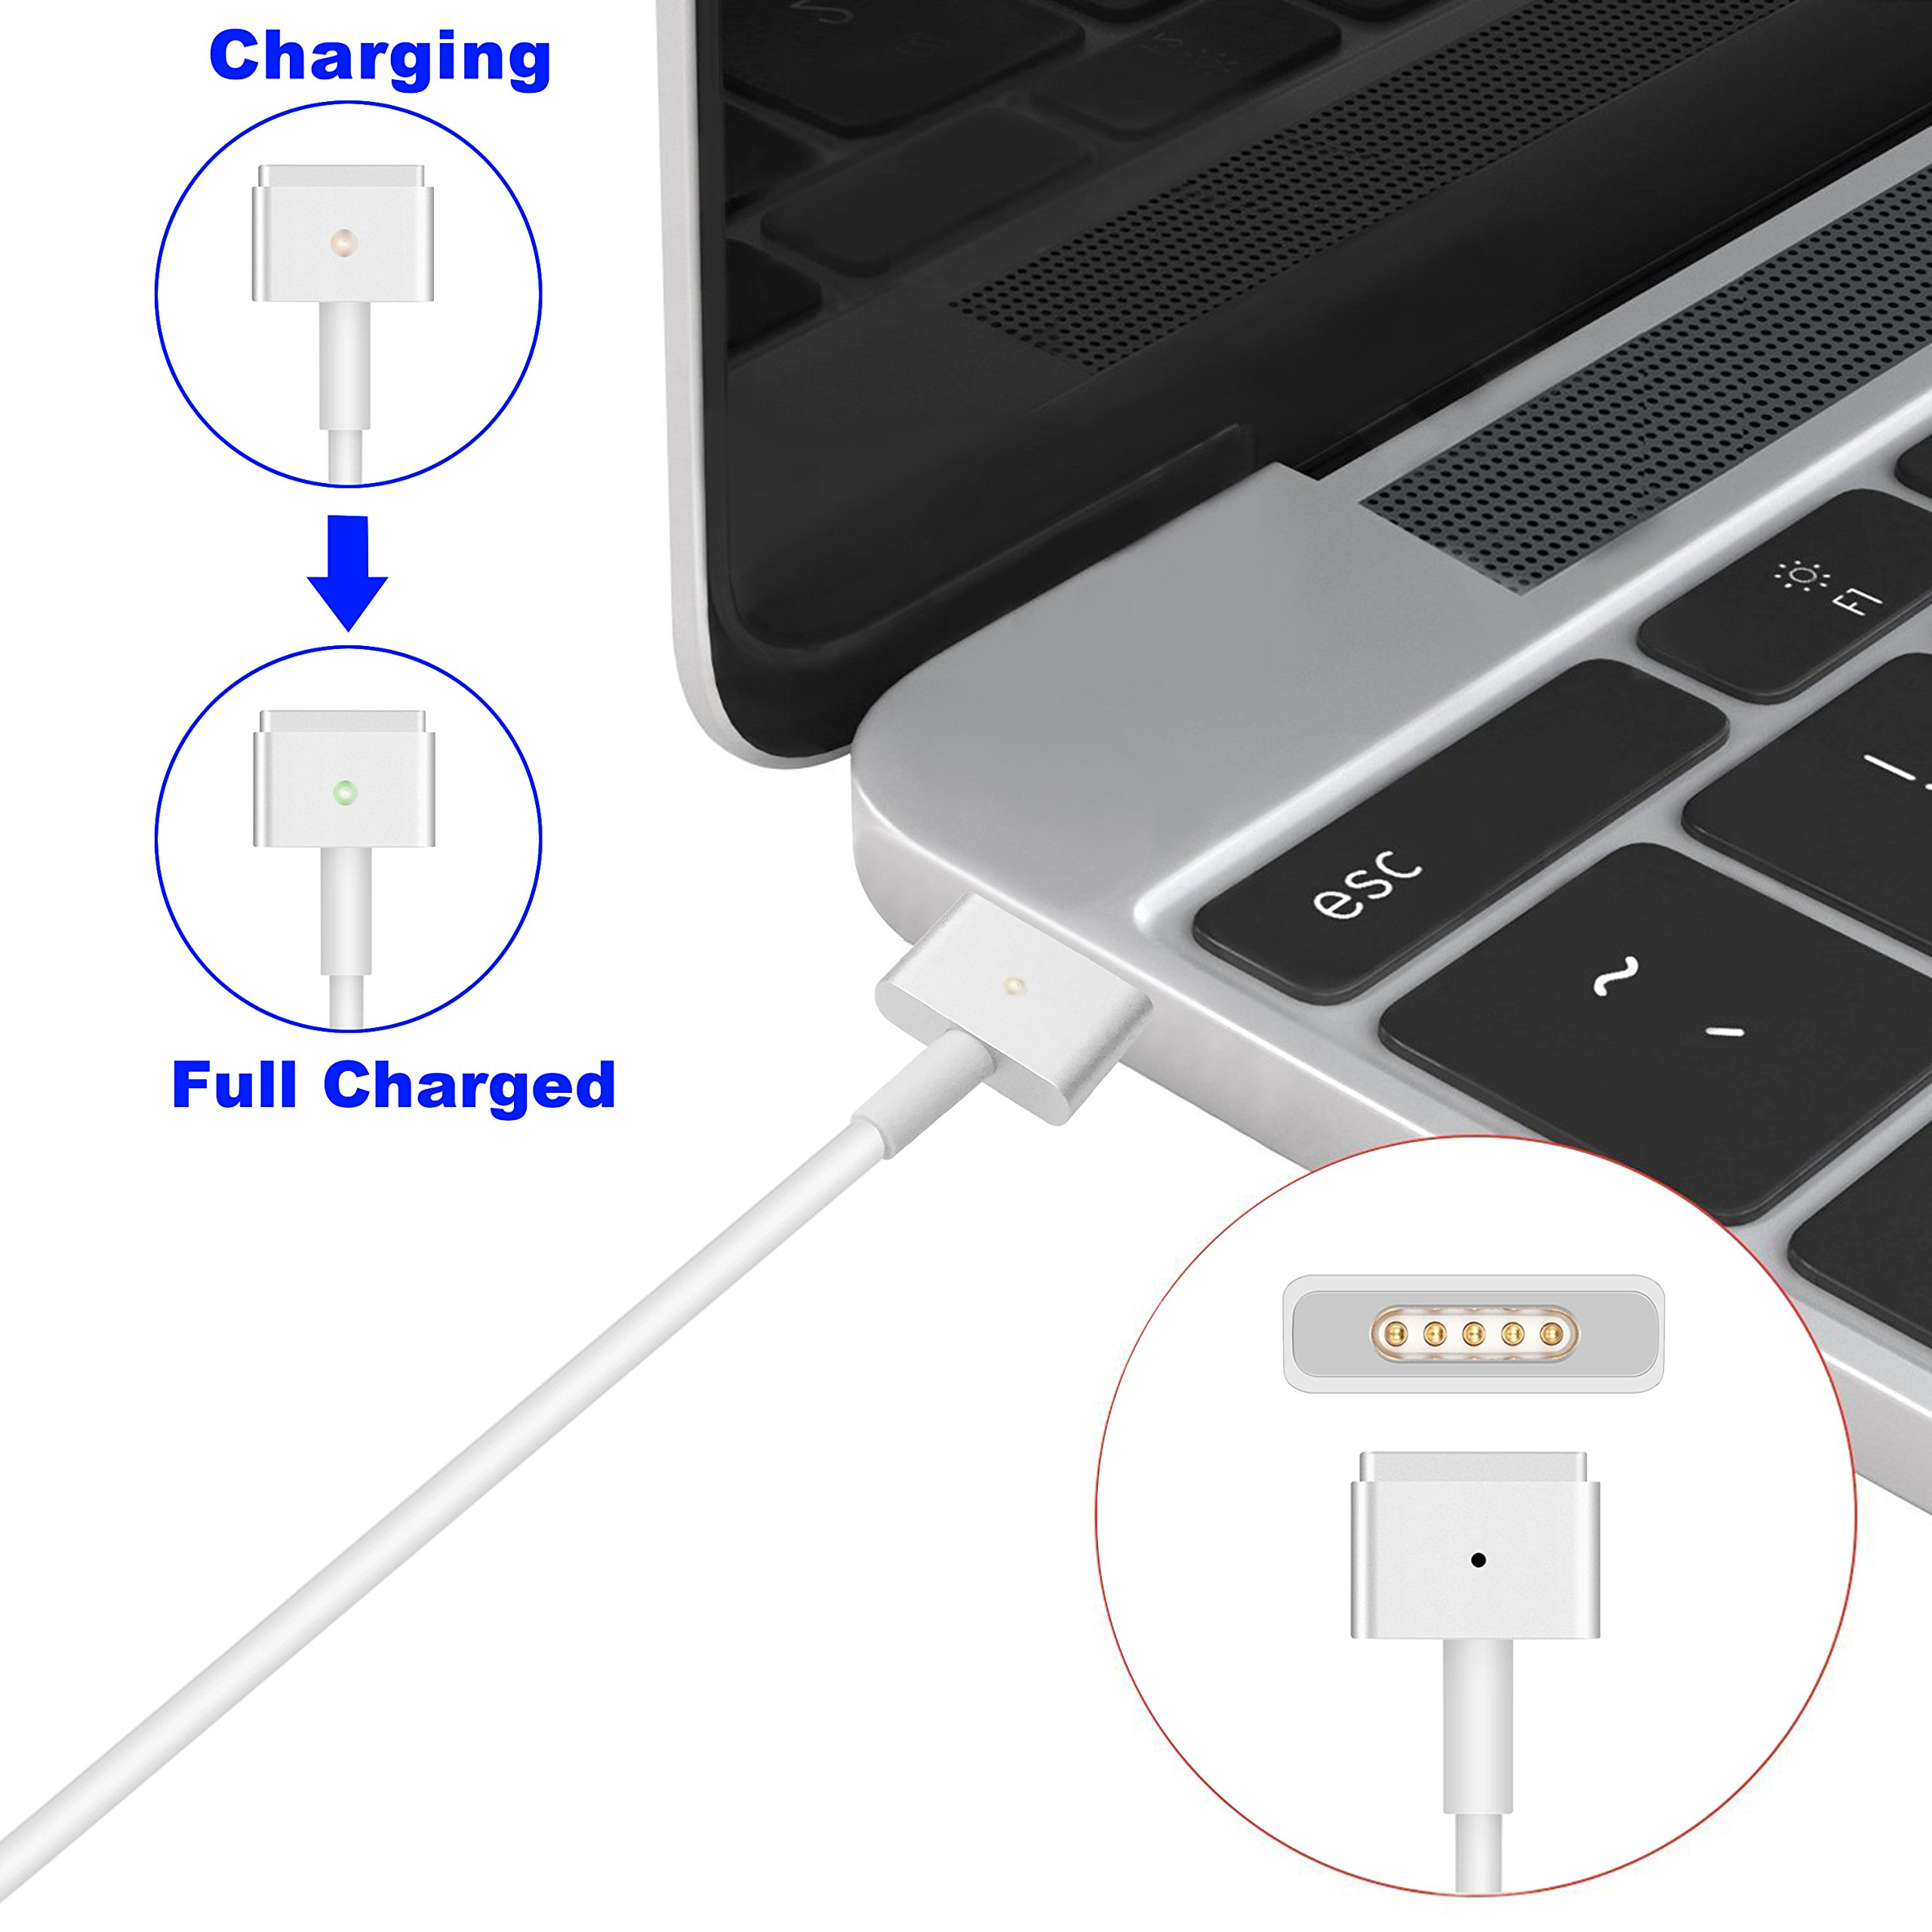 Fit for MacBook Air Charger, Aonear Replacement 45W T-Tip Magsafe 2 AC Power Adapter Charger for MacBook Pro/Air 11-inch& 13-inch-18-month Warranty by aonear (Image #5)